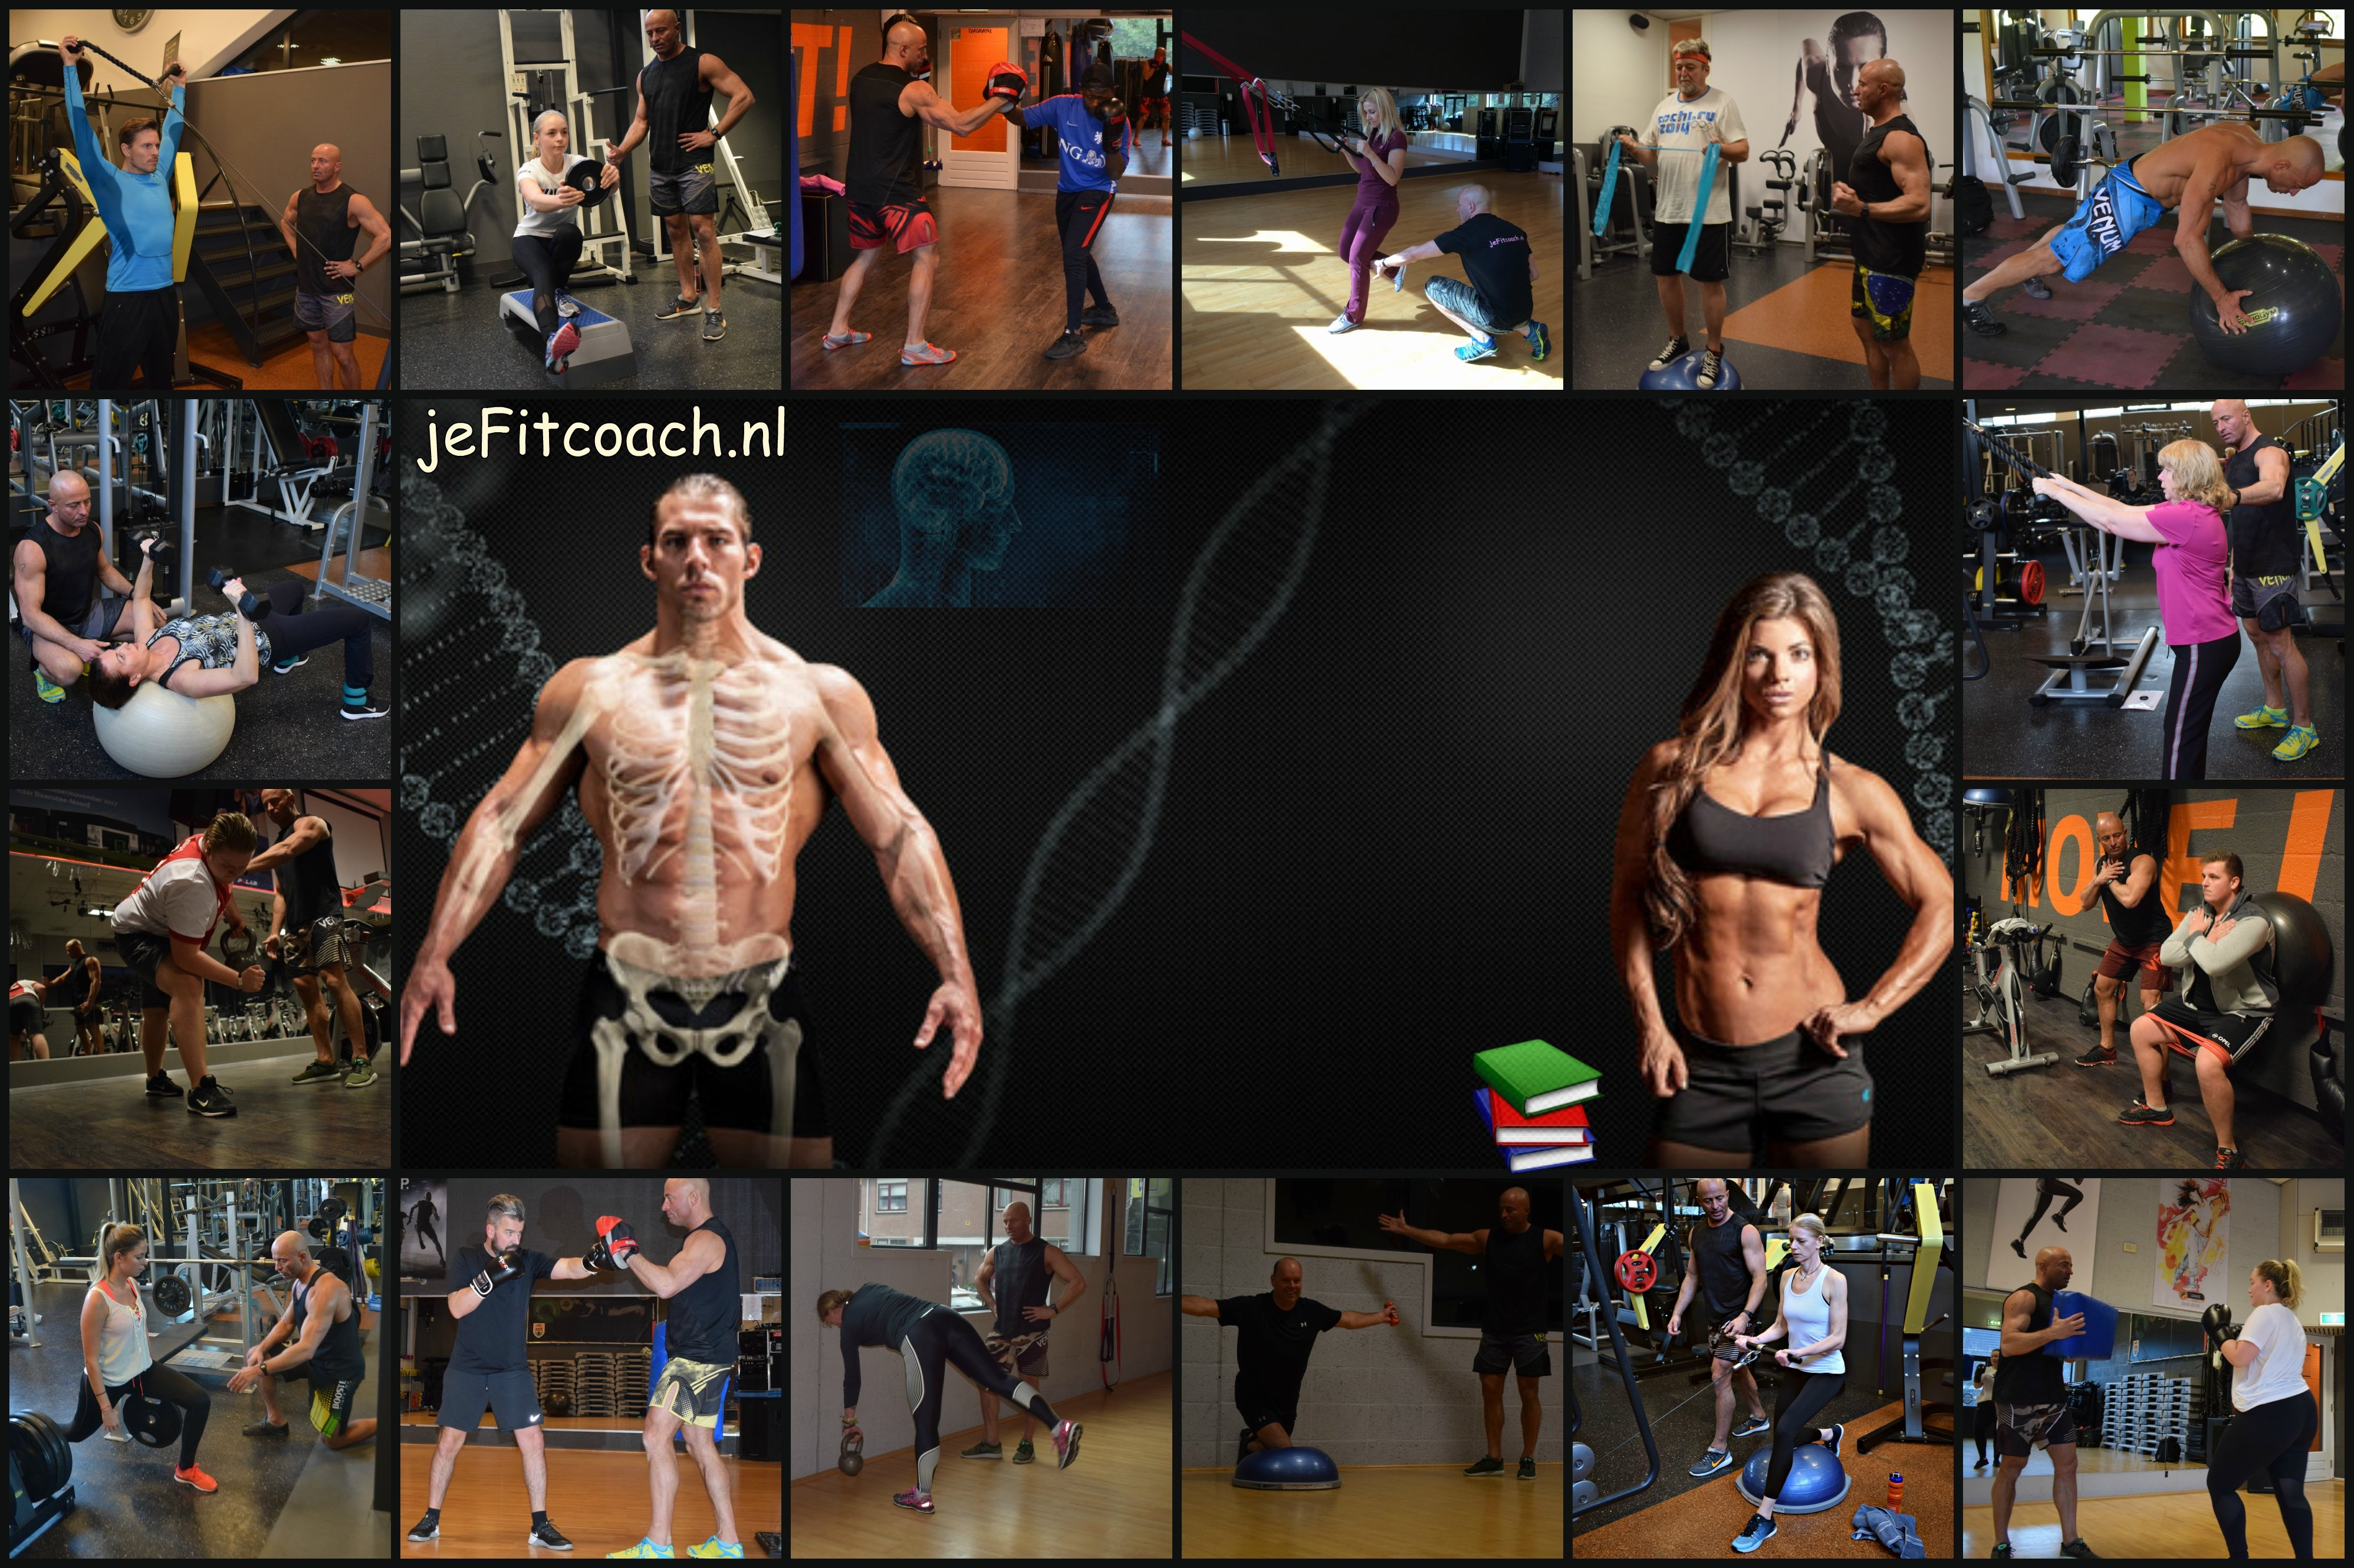 jefitcoach Ray 1 op 1 training